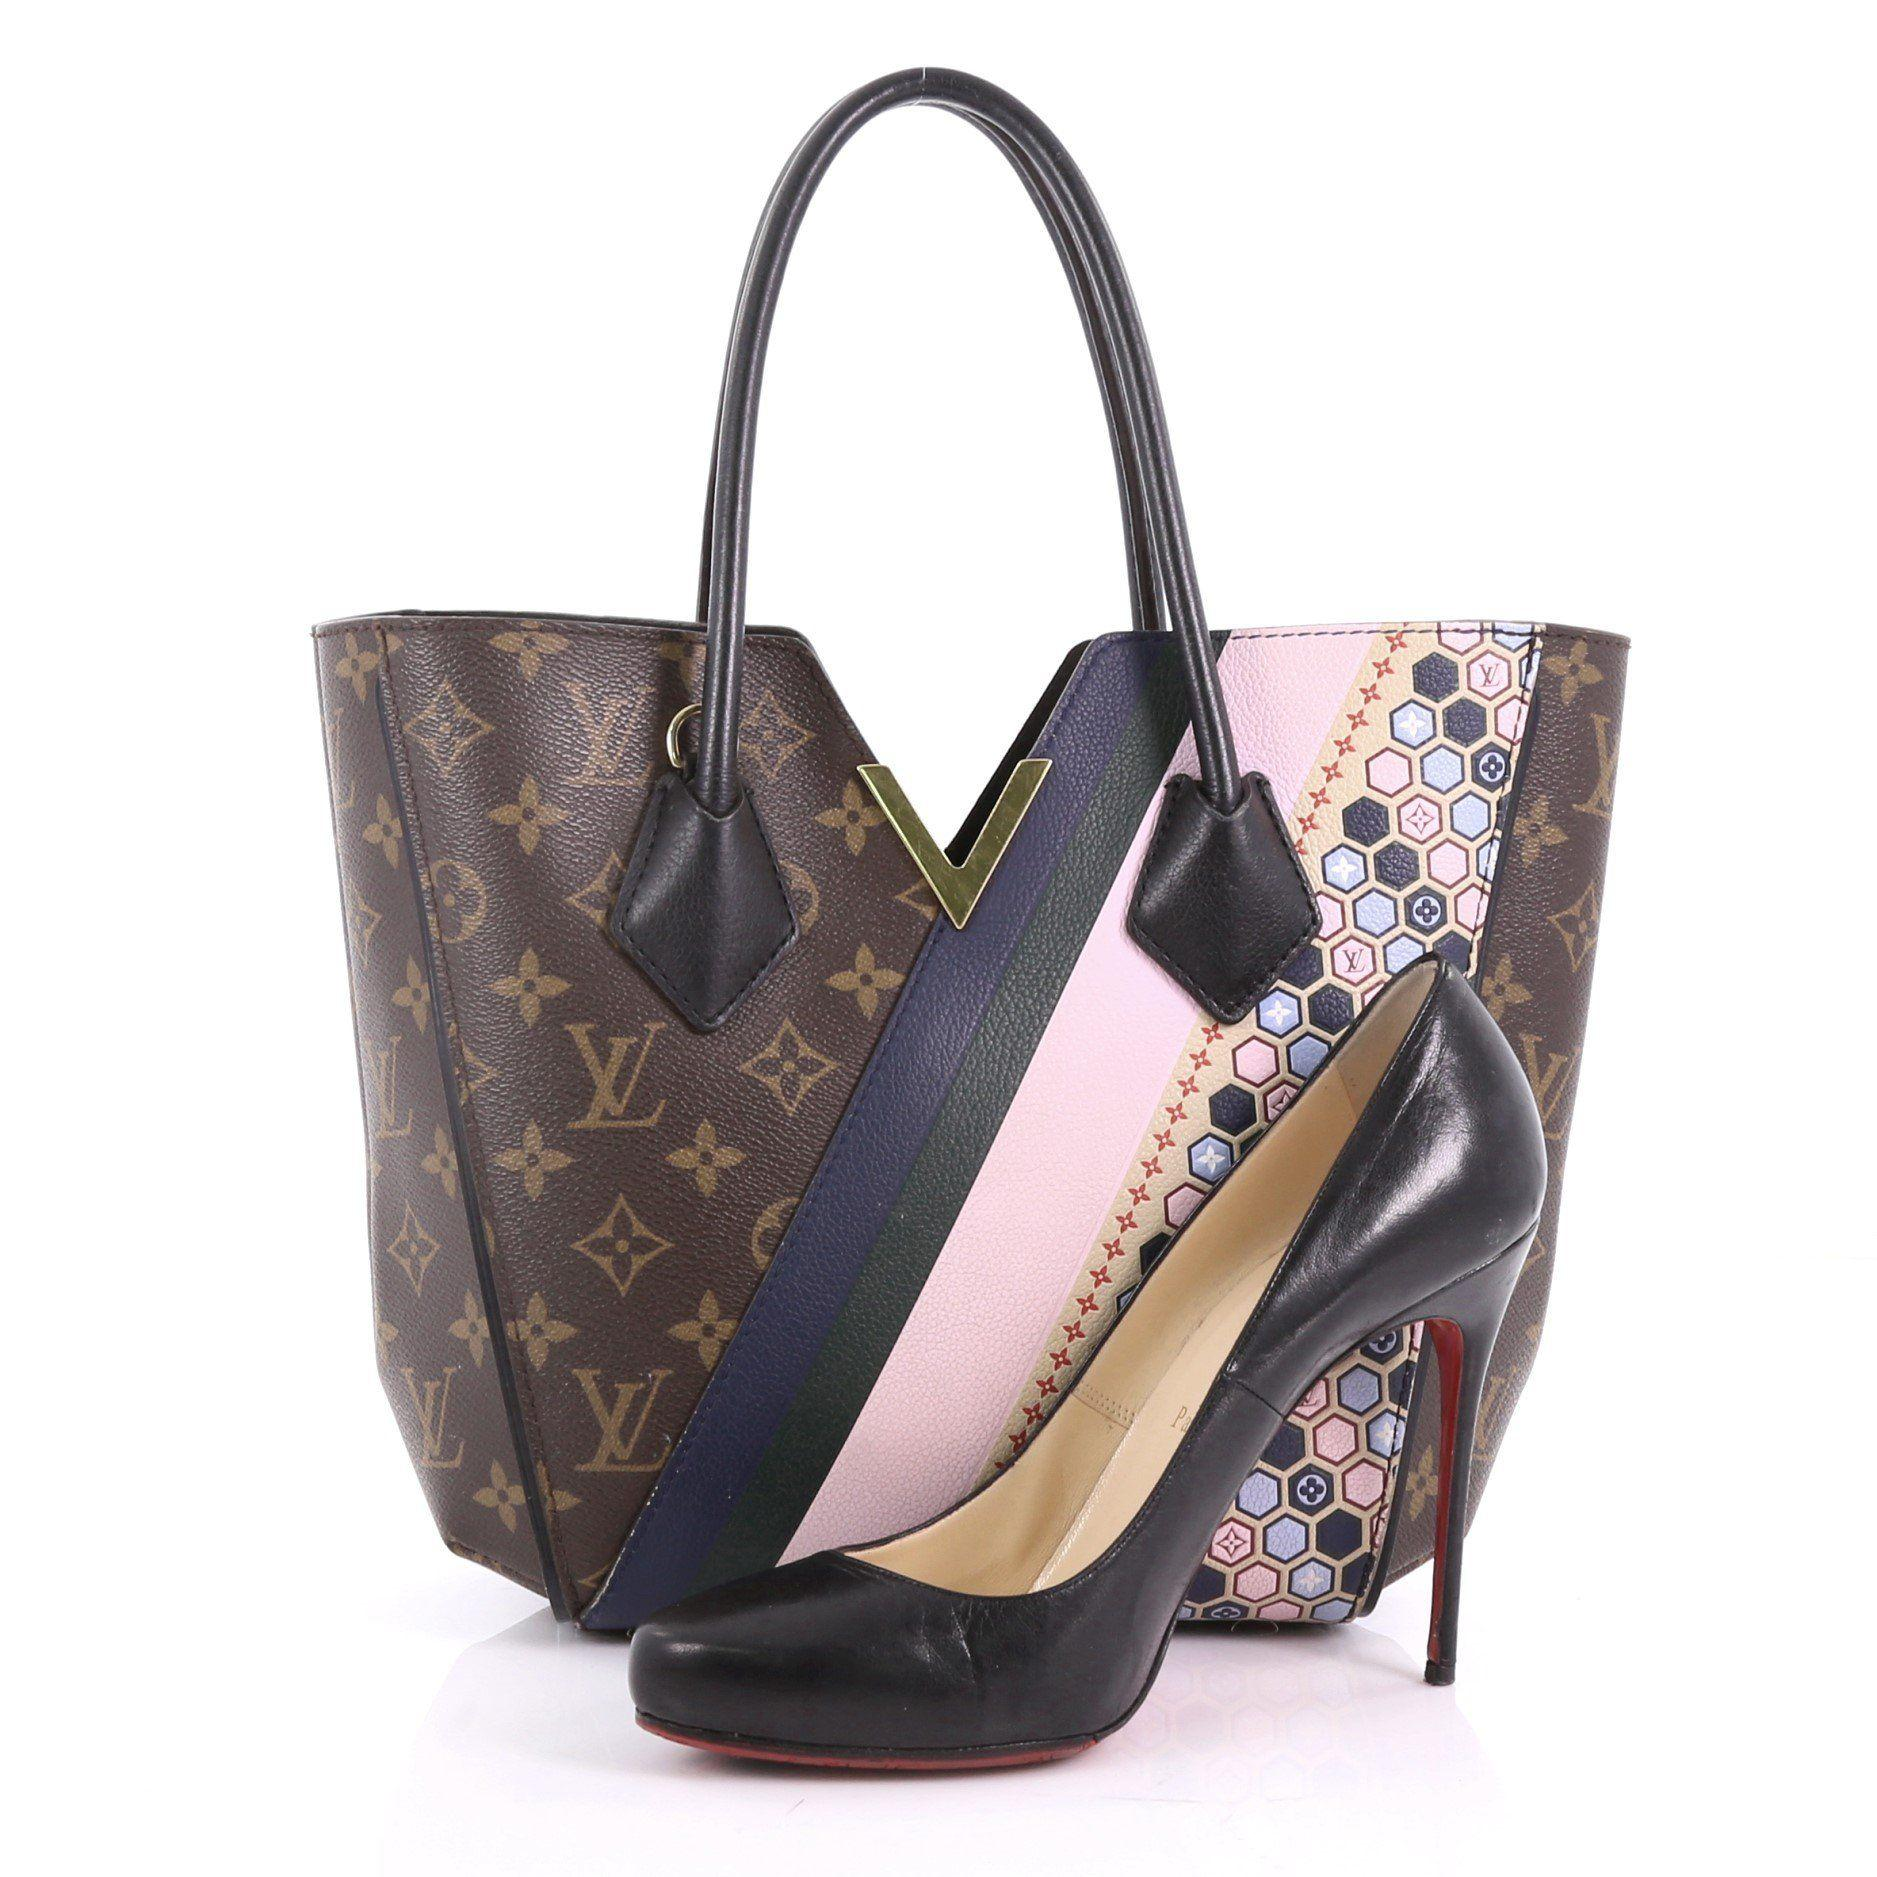 Louis Vuitton - Multicolor Pre Owned Kimono Handbag Limited Edition Monogram  Canvas And Leather Pm -. View fullscreen a332afe2fd